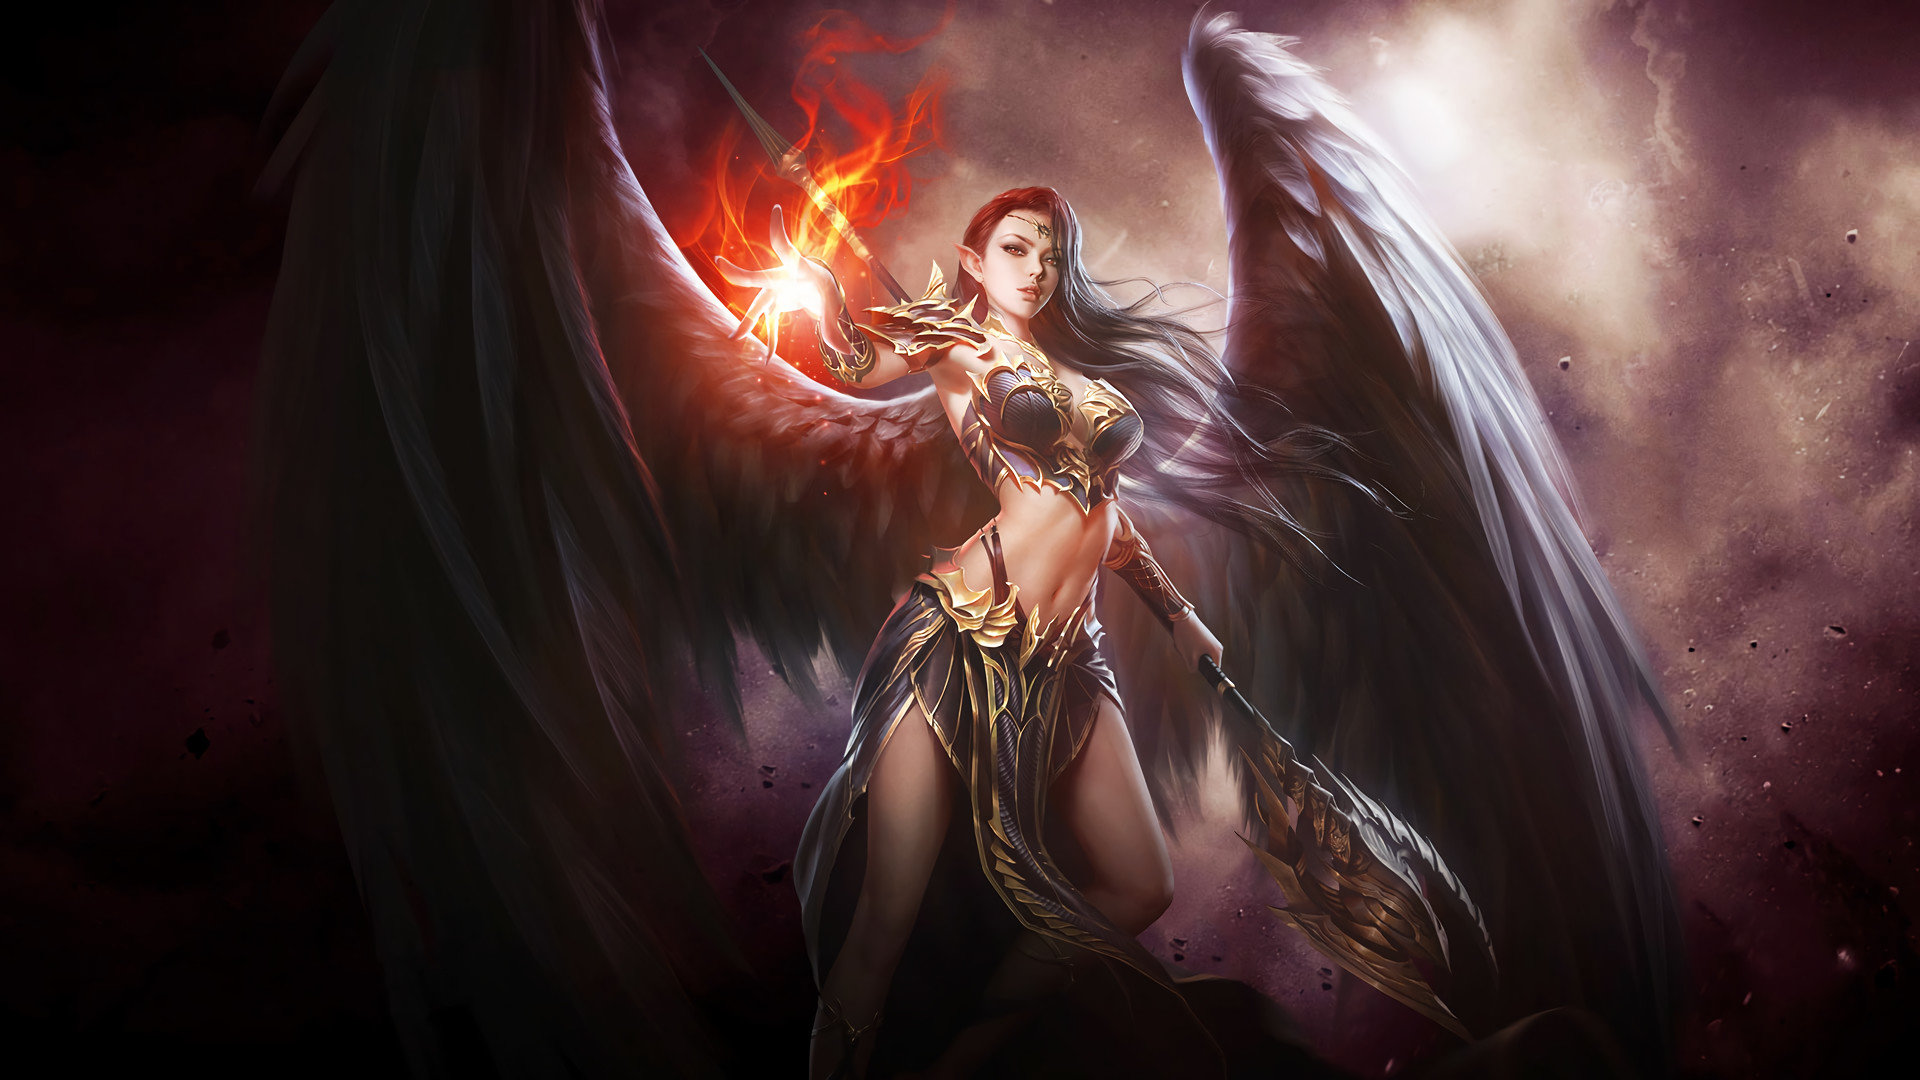 Chica Con Alas De Angel Full Hd En Fondos 1080: Best Angel Warrior Wallpaper ID:352326 For High Resolution